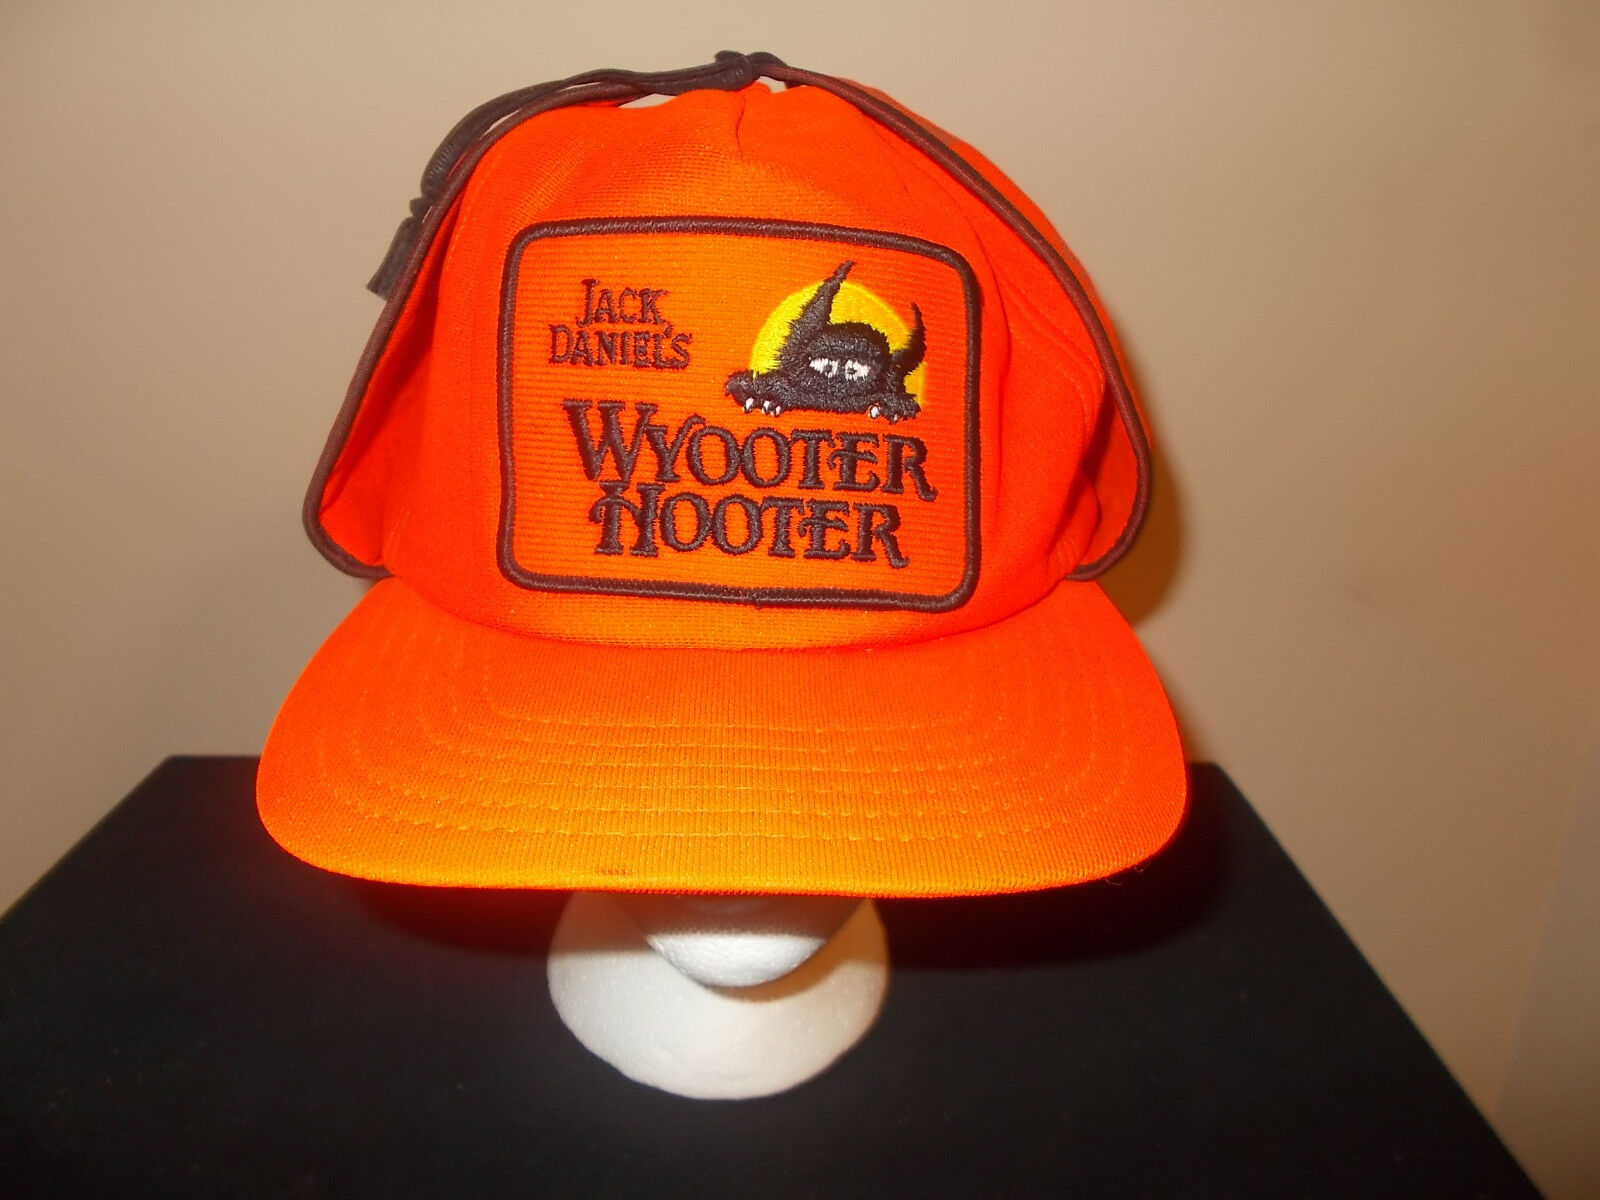 Primary image for Vtg-1980s Jack Daniels Wyooter Orange Chasse au Chevreuil Elmer Fudd Chapeau